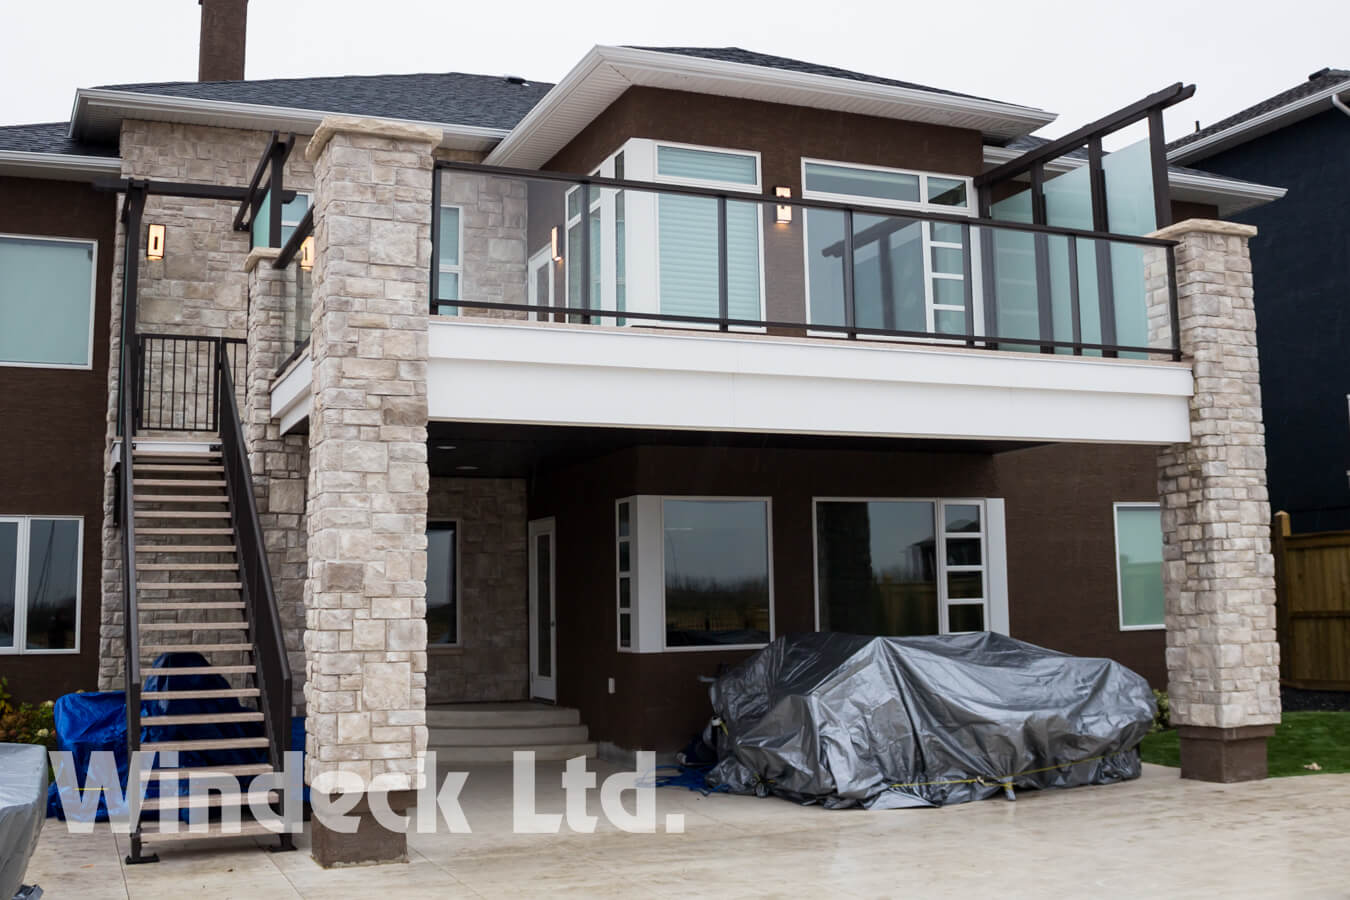 Second Floor Walkout Deck - Windeck Ltd. - Composite Decking Winnipeg, Manitoba